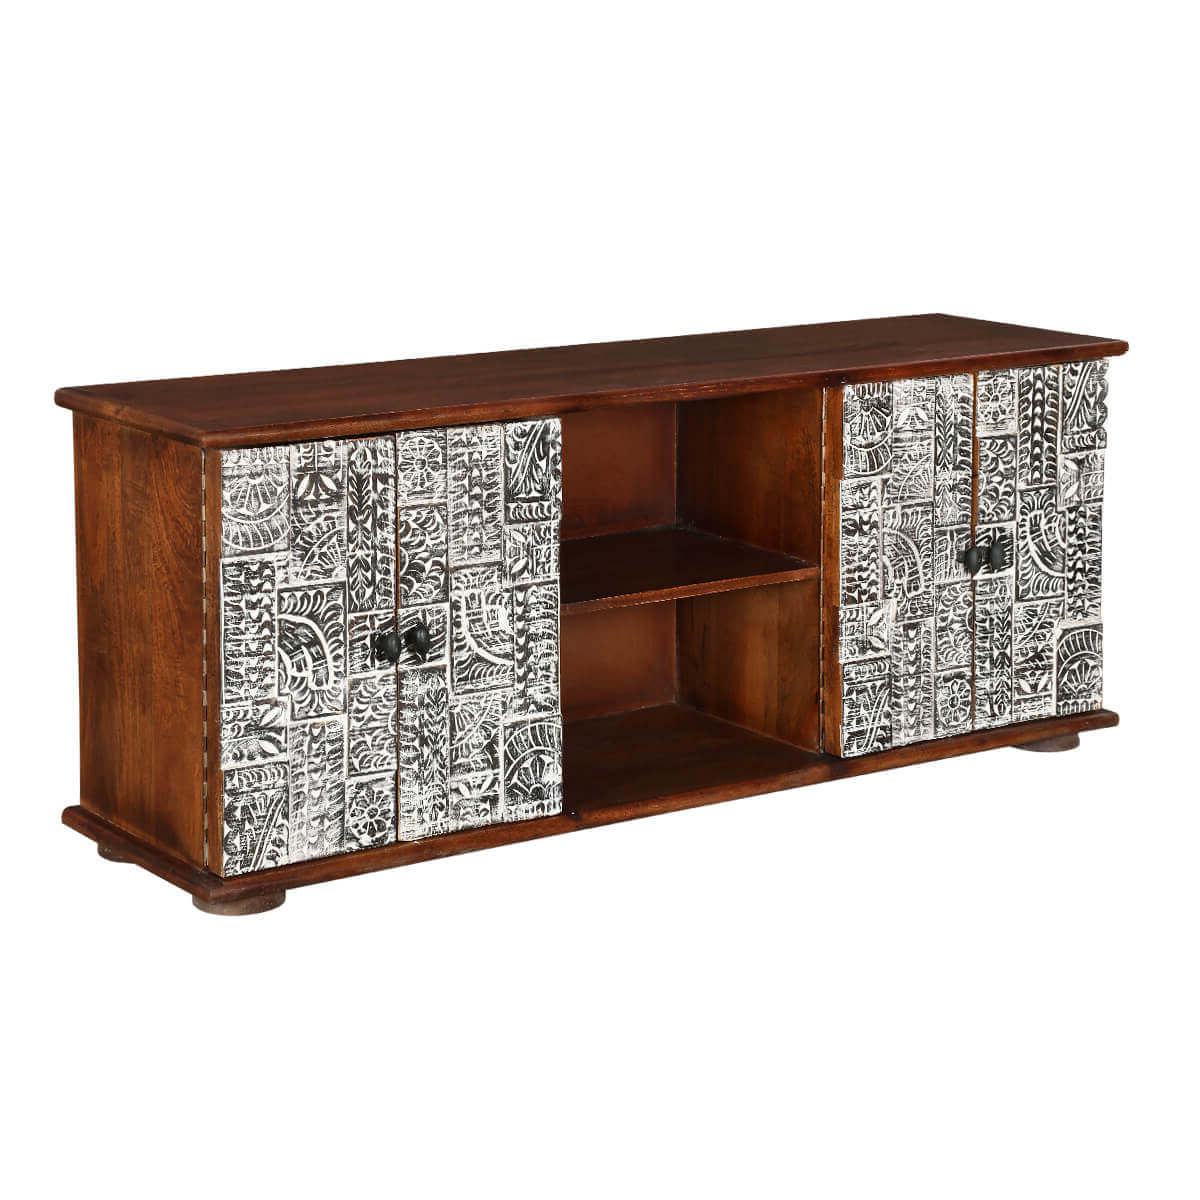 Riviera Rustic Mango Wood Tv Stand With Cabinet Shelves Regarding Newest Mango Wood Tv Cabinets (View 20 of 20)